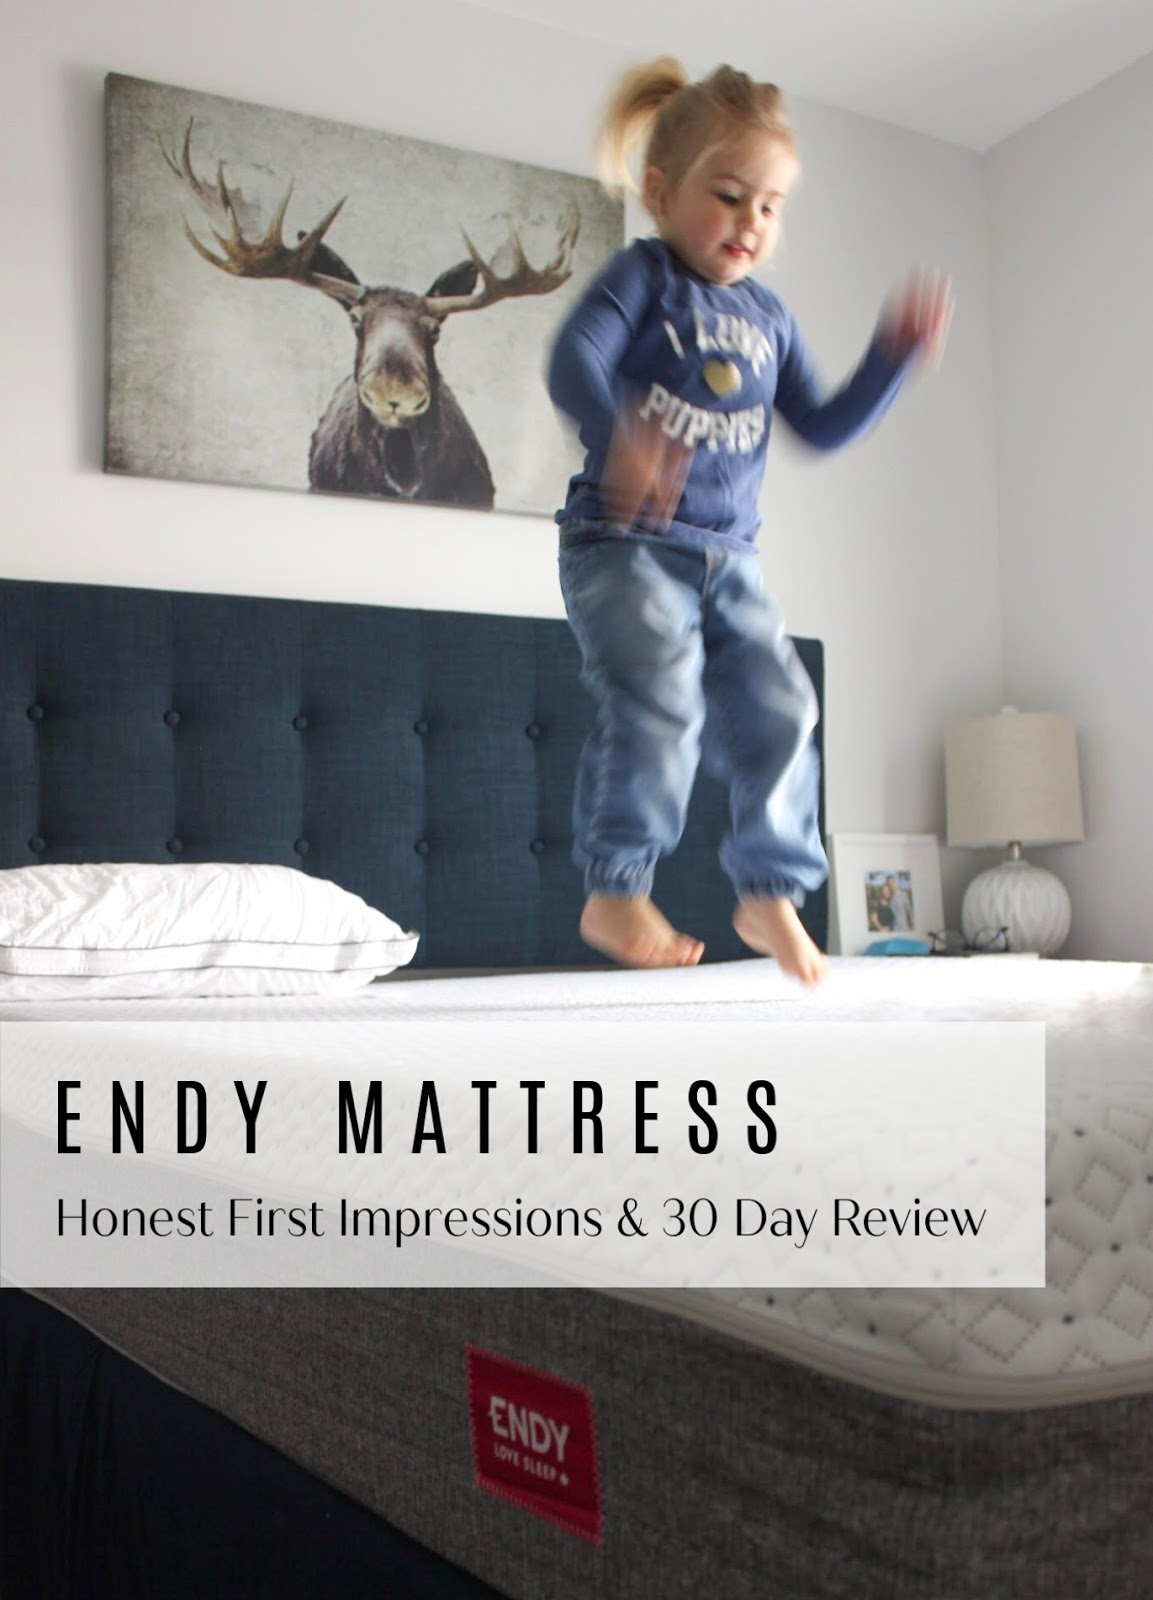 Endy Mattress Honest First Impressions & 30 Day Review